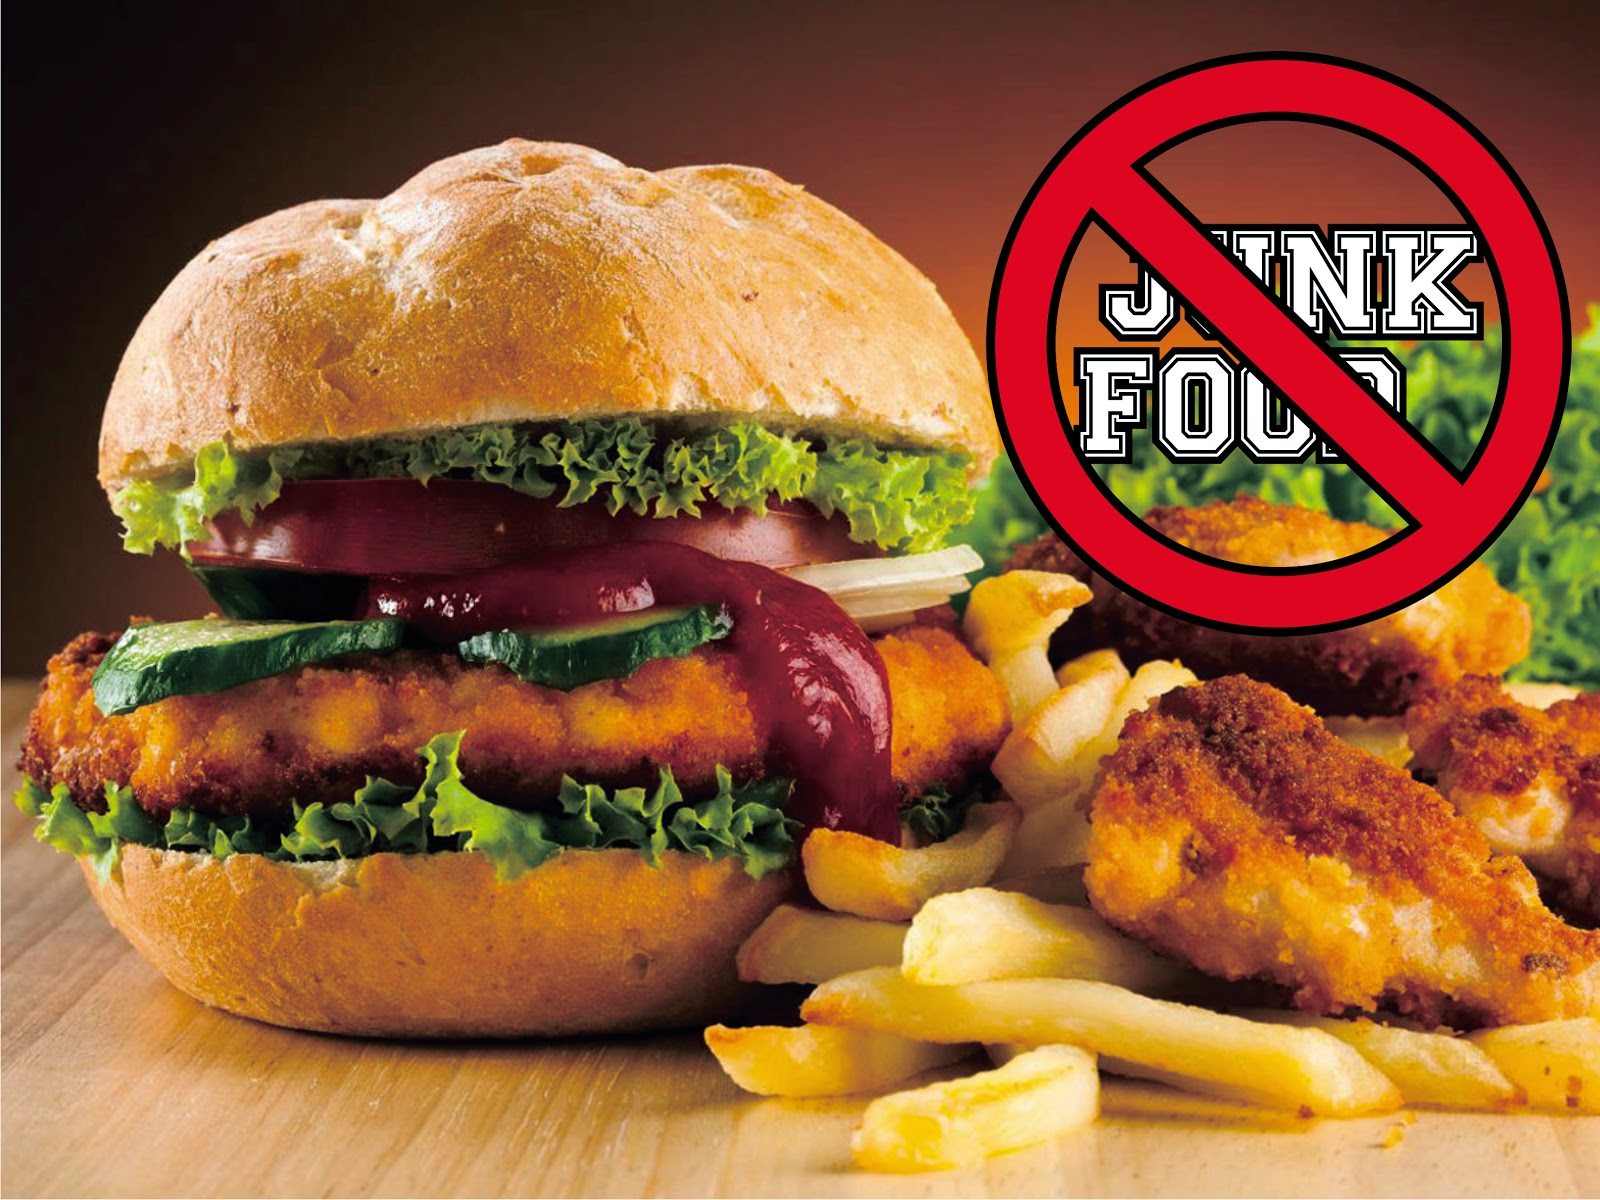 Knowing India: Say no to junk food